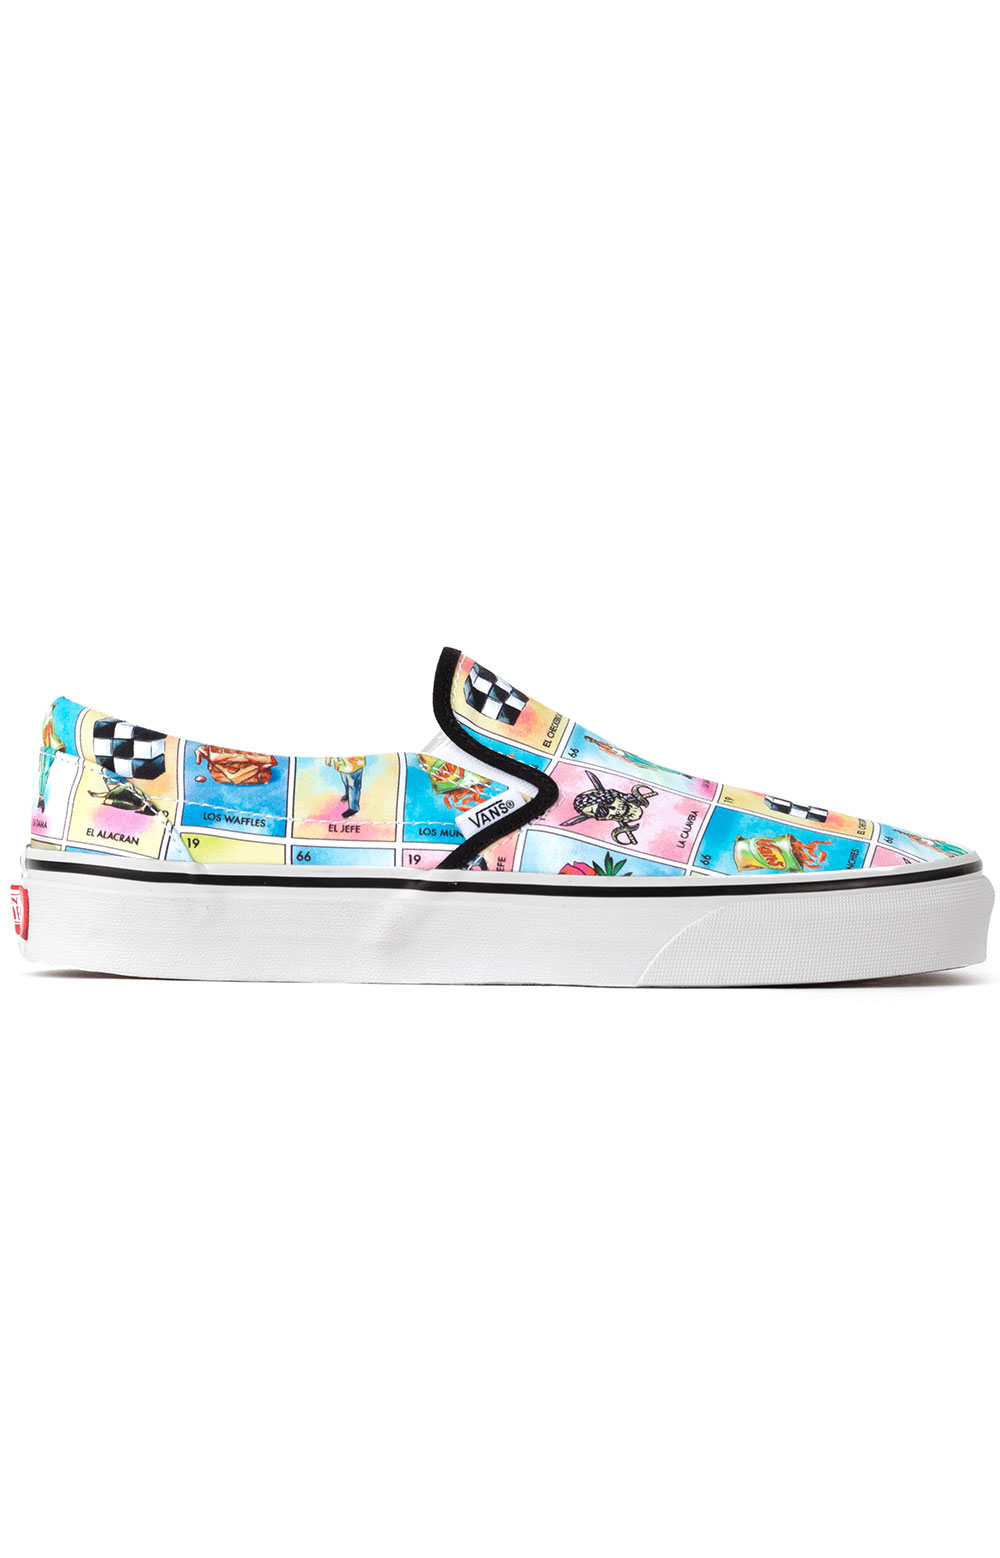 (U38WN1) Los Vans Classic Slip-On Shoes - Multi/True White